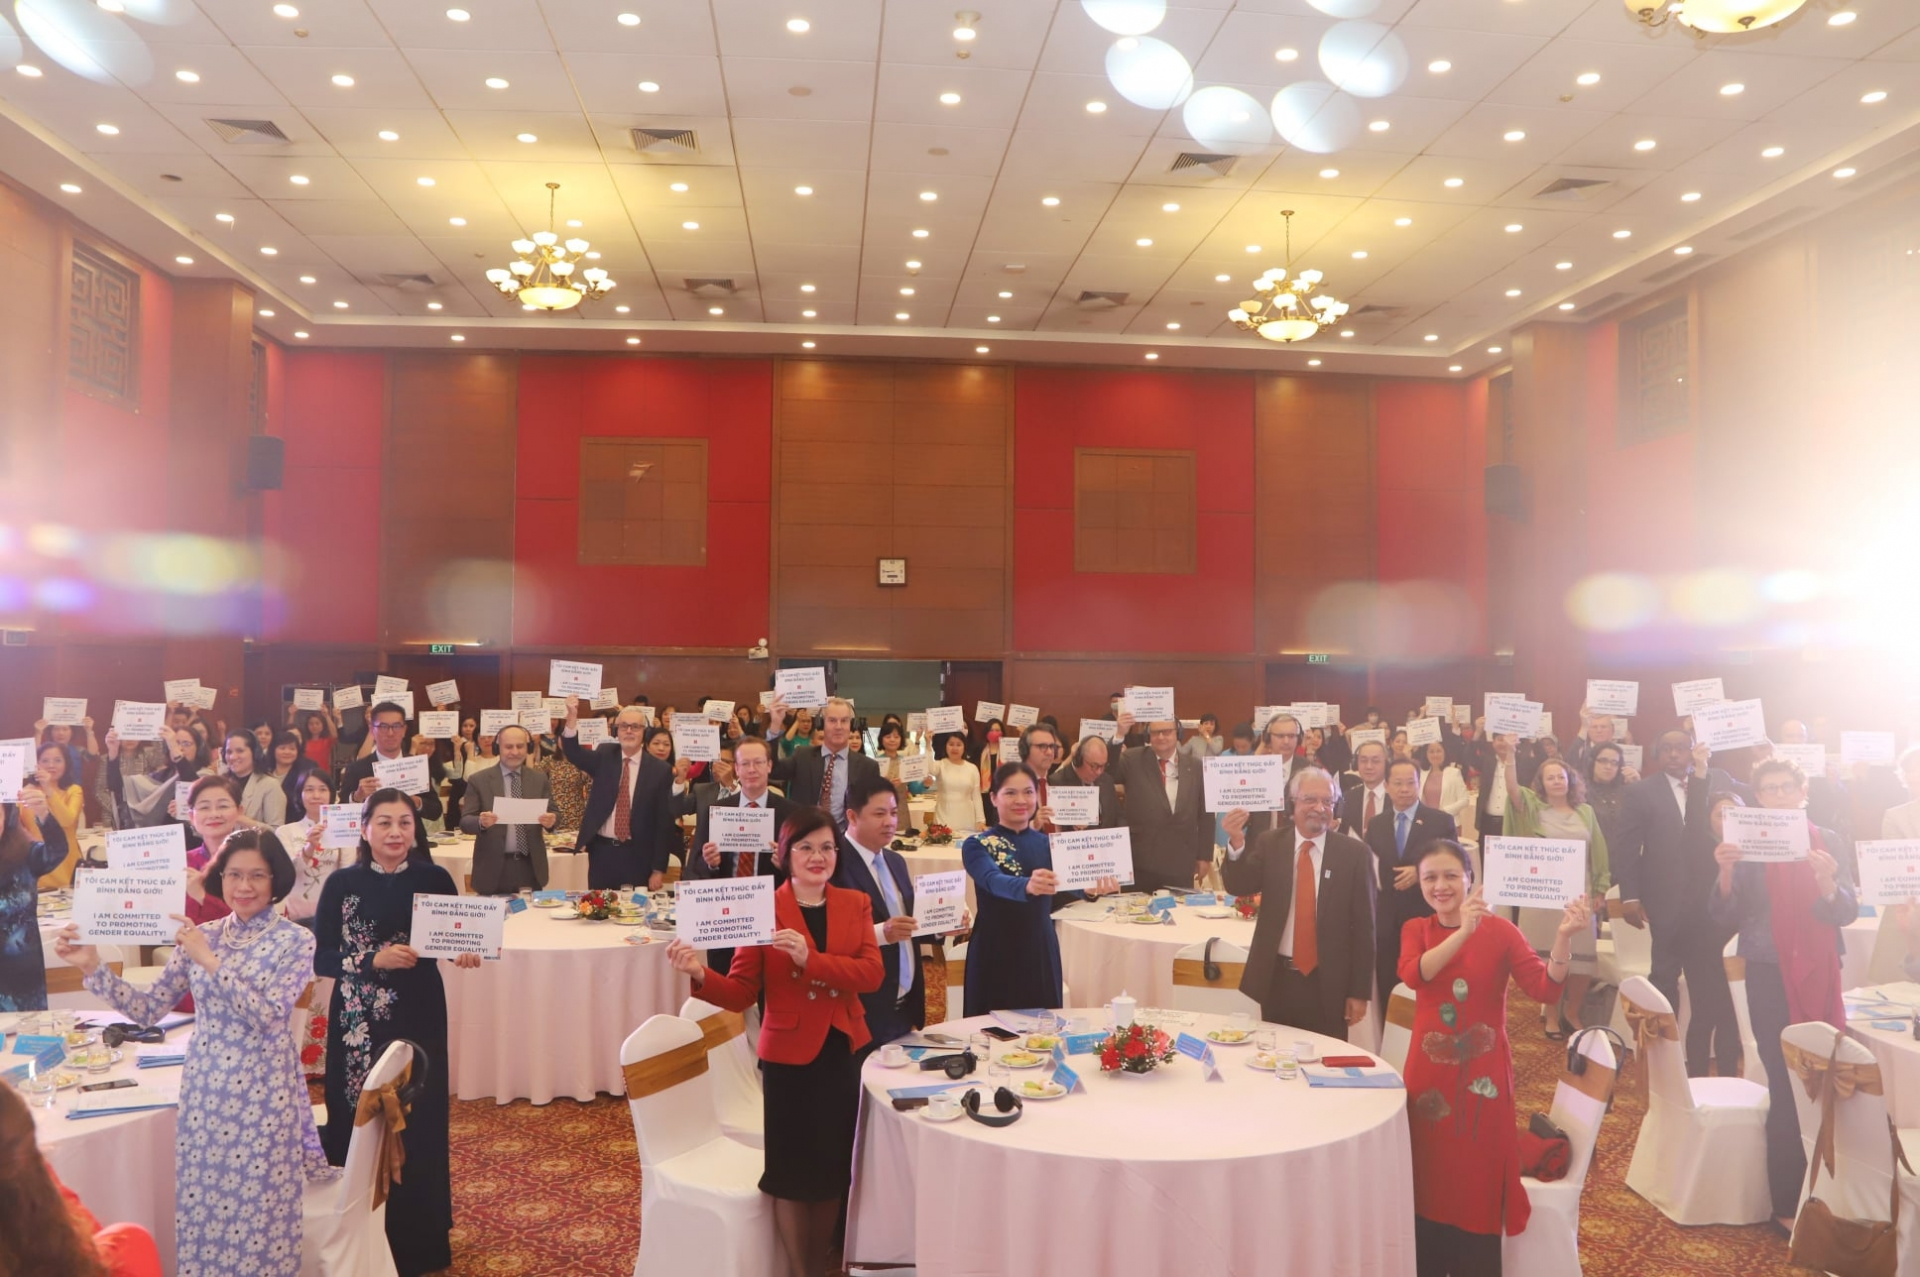 Promoting implementation of sdgs from a gender perspective